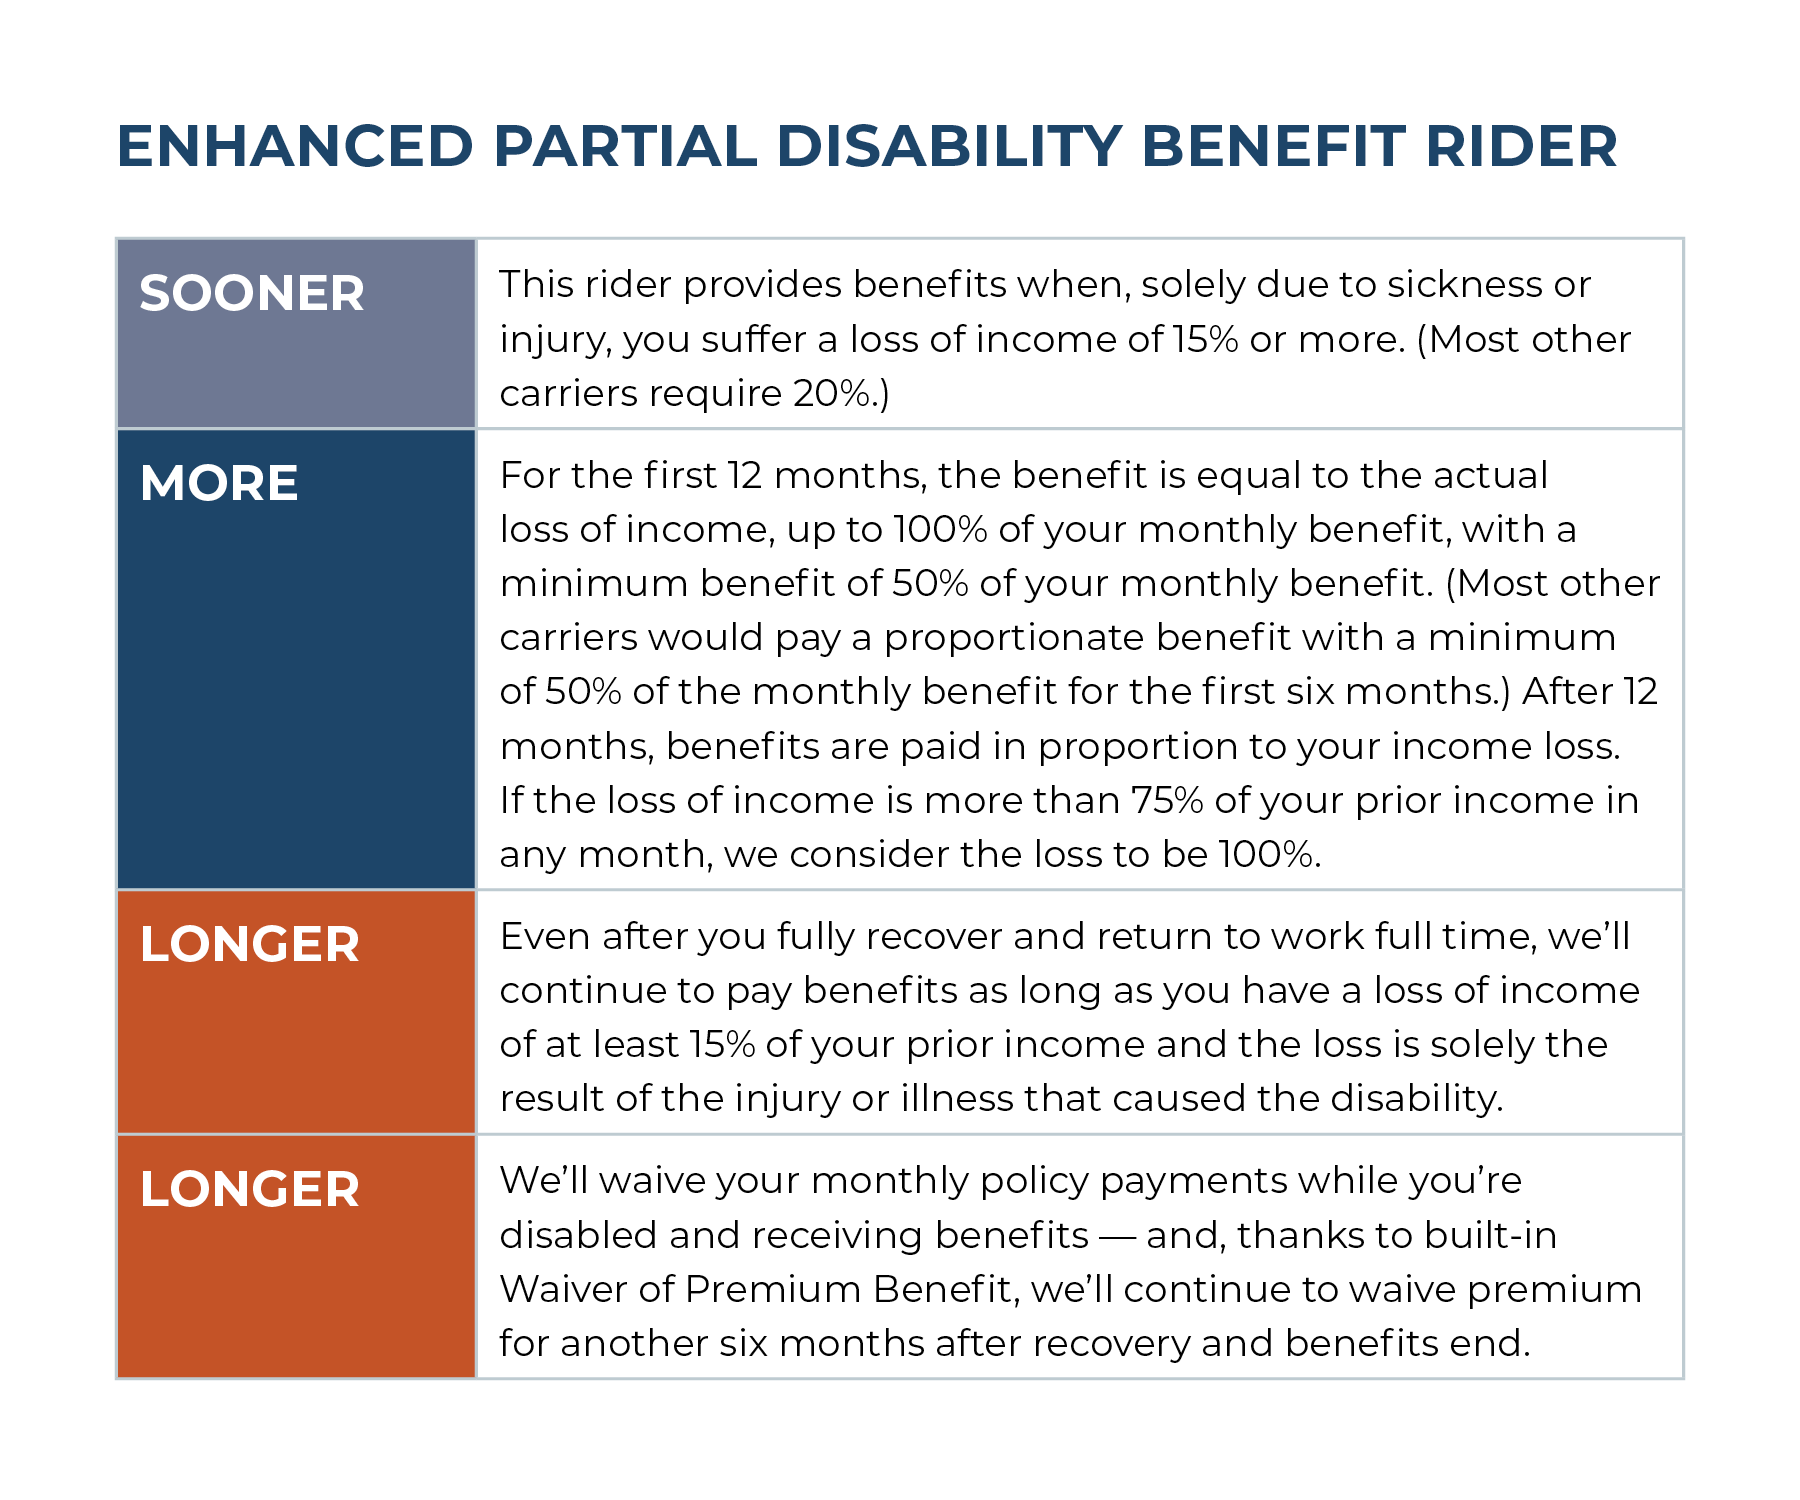 Enhanced Partial Disability Benefit Rider